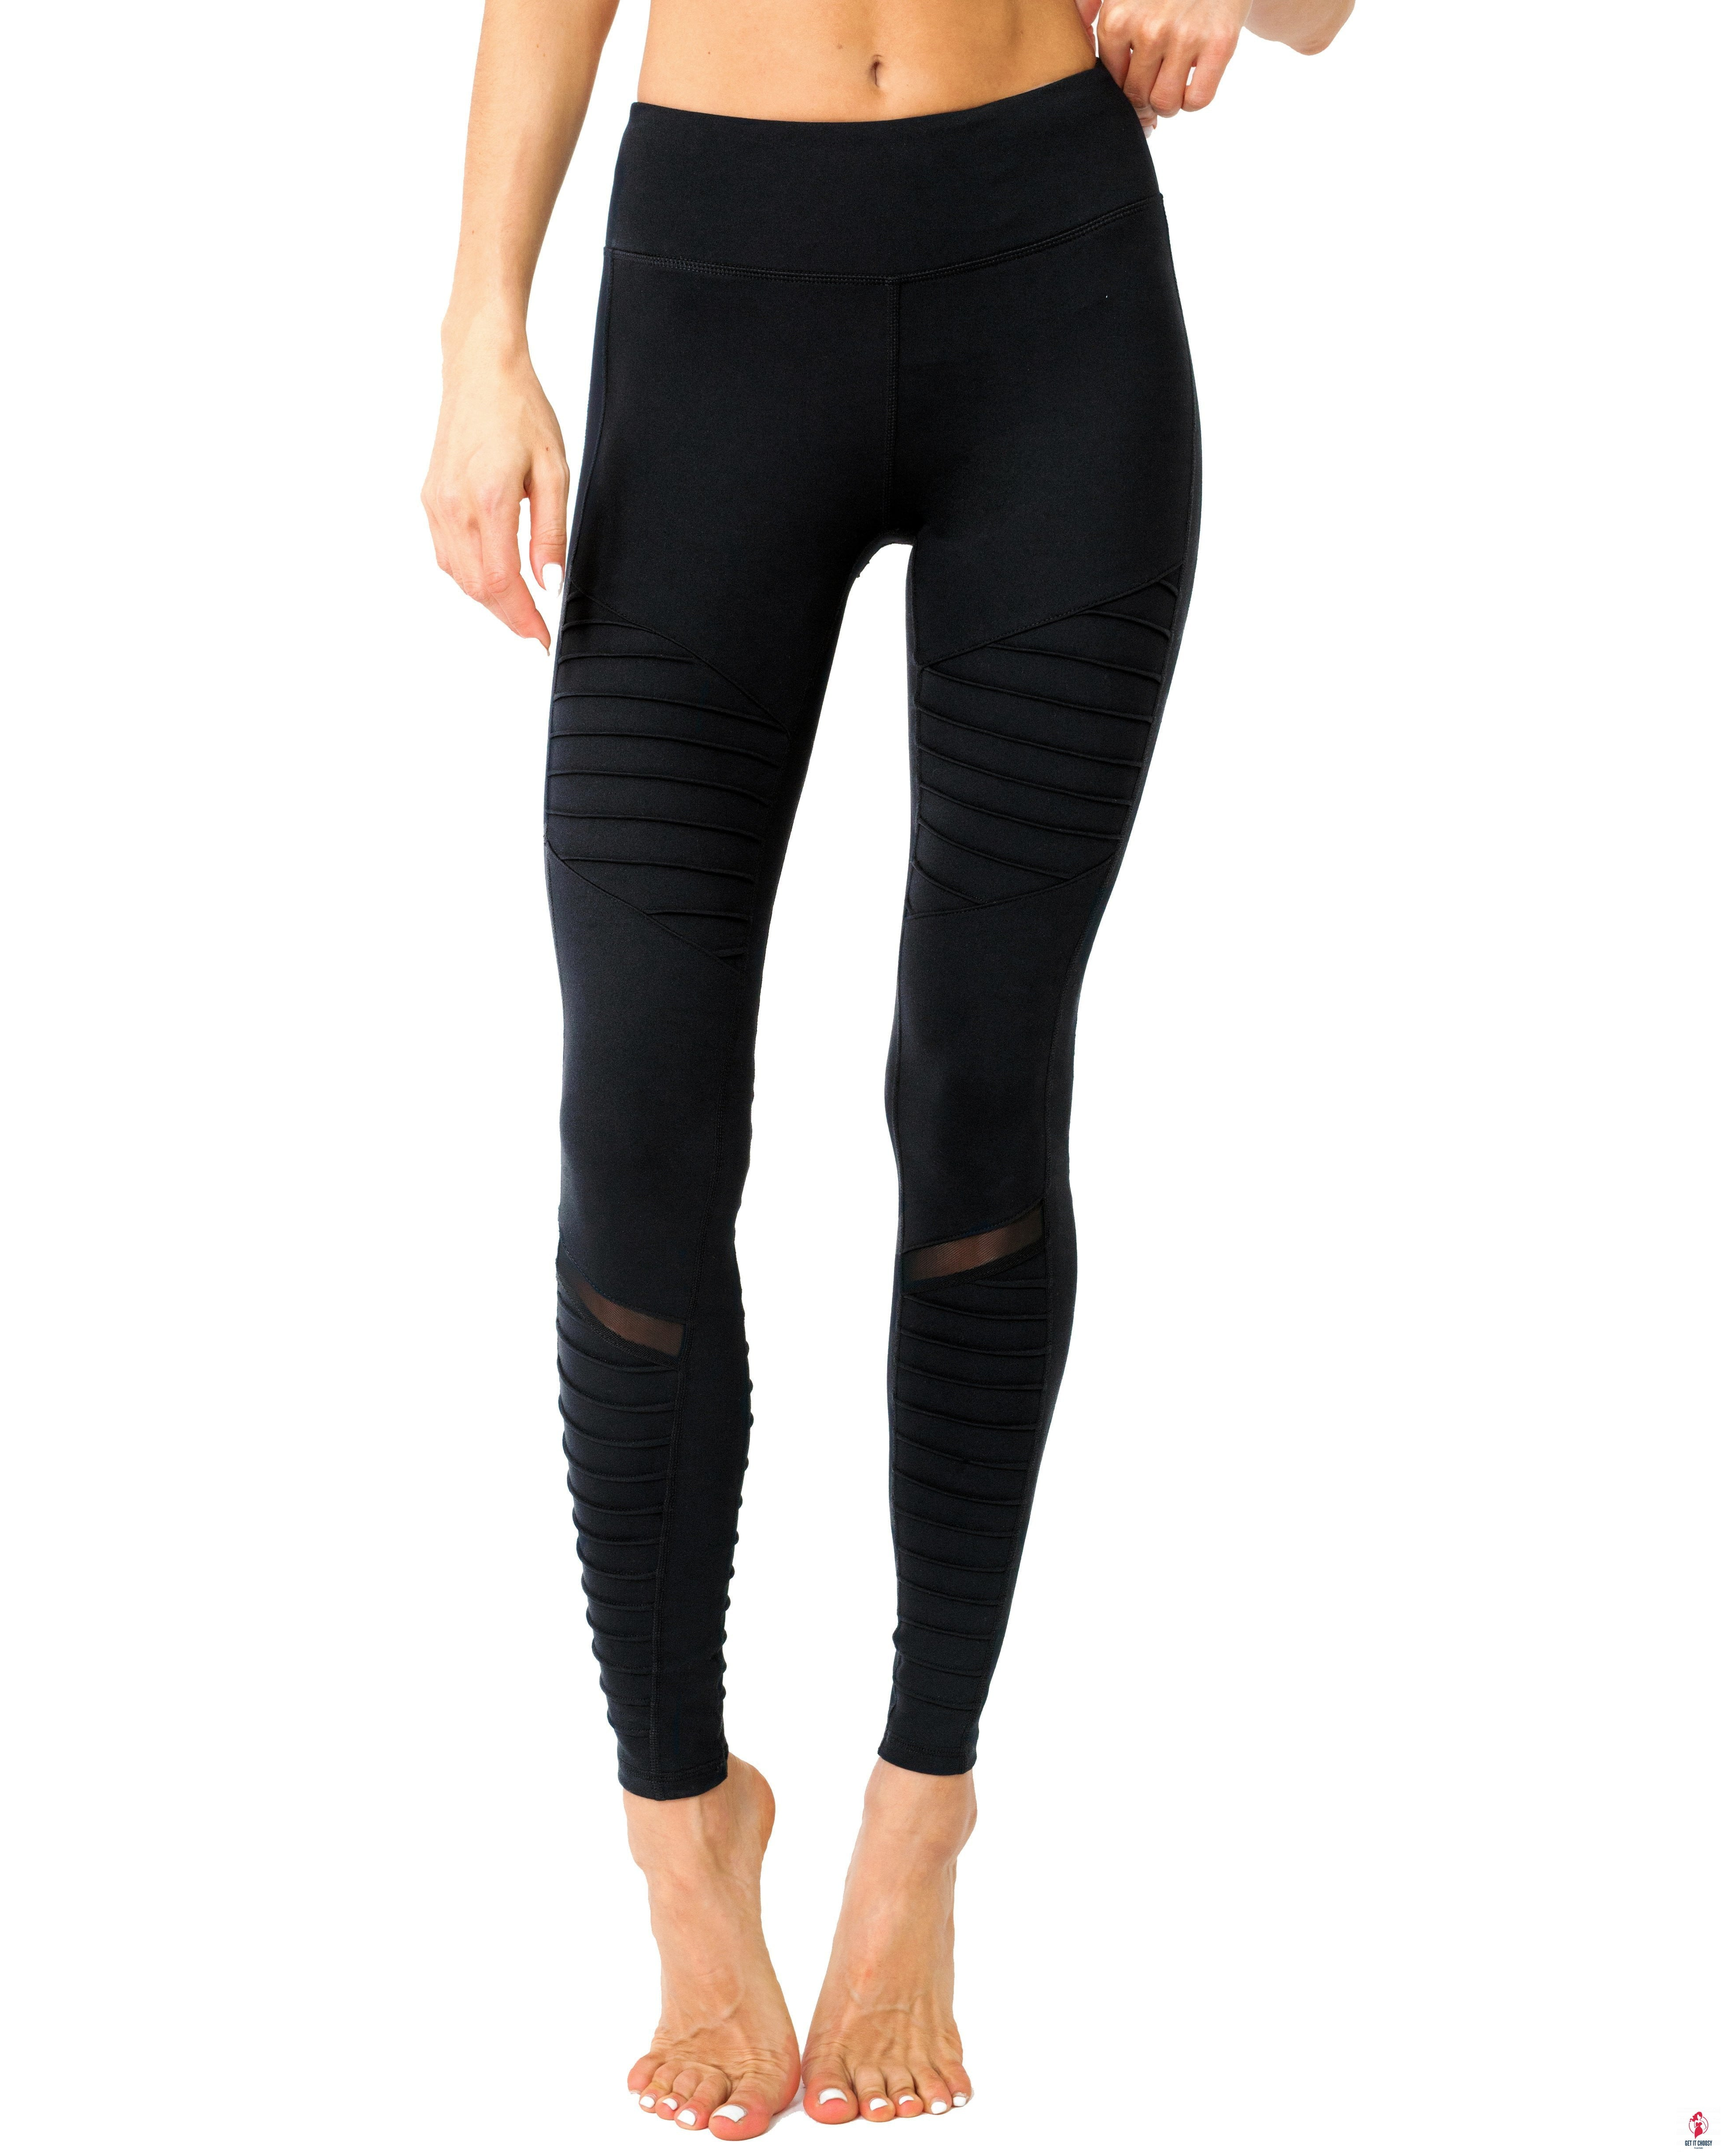 Athletique Low-Waisted Ribbed Leggings With Hidden by Getitchoosy